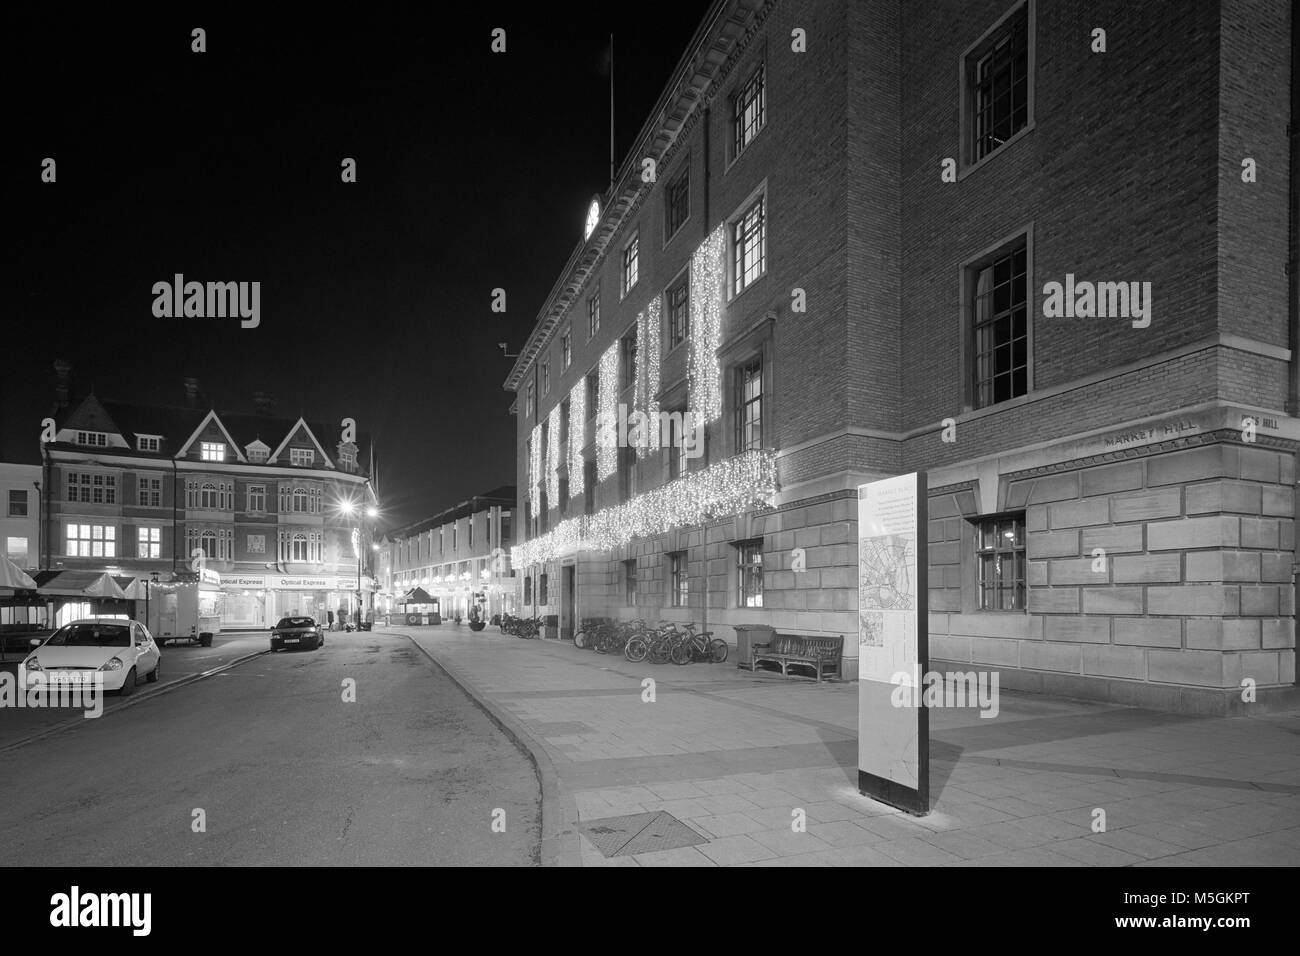 The Guildhall Market Hill Cambridge decorated with Christmas lights - Stock Image